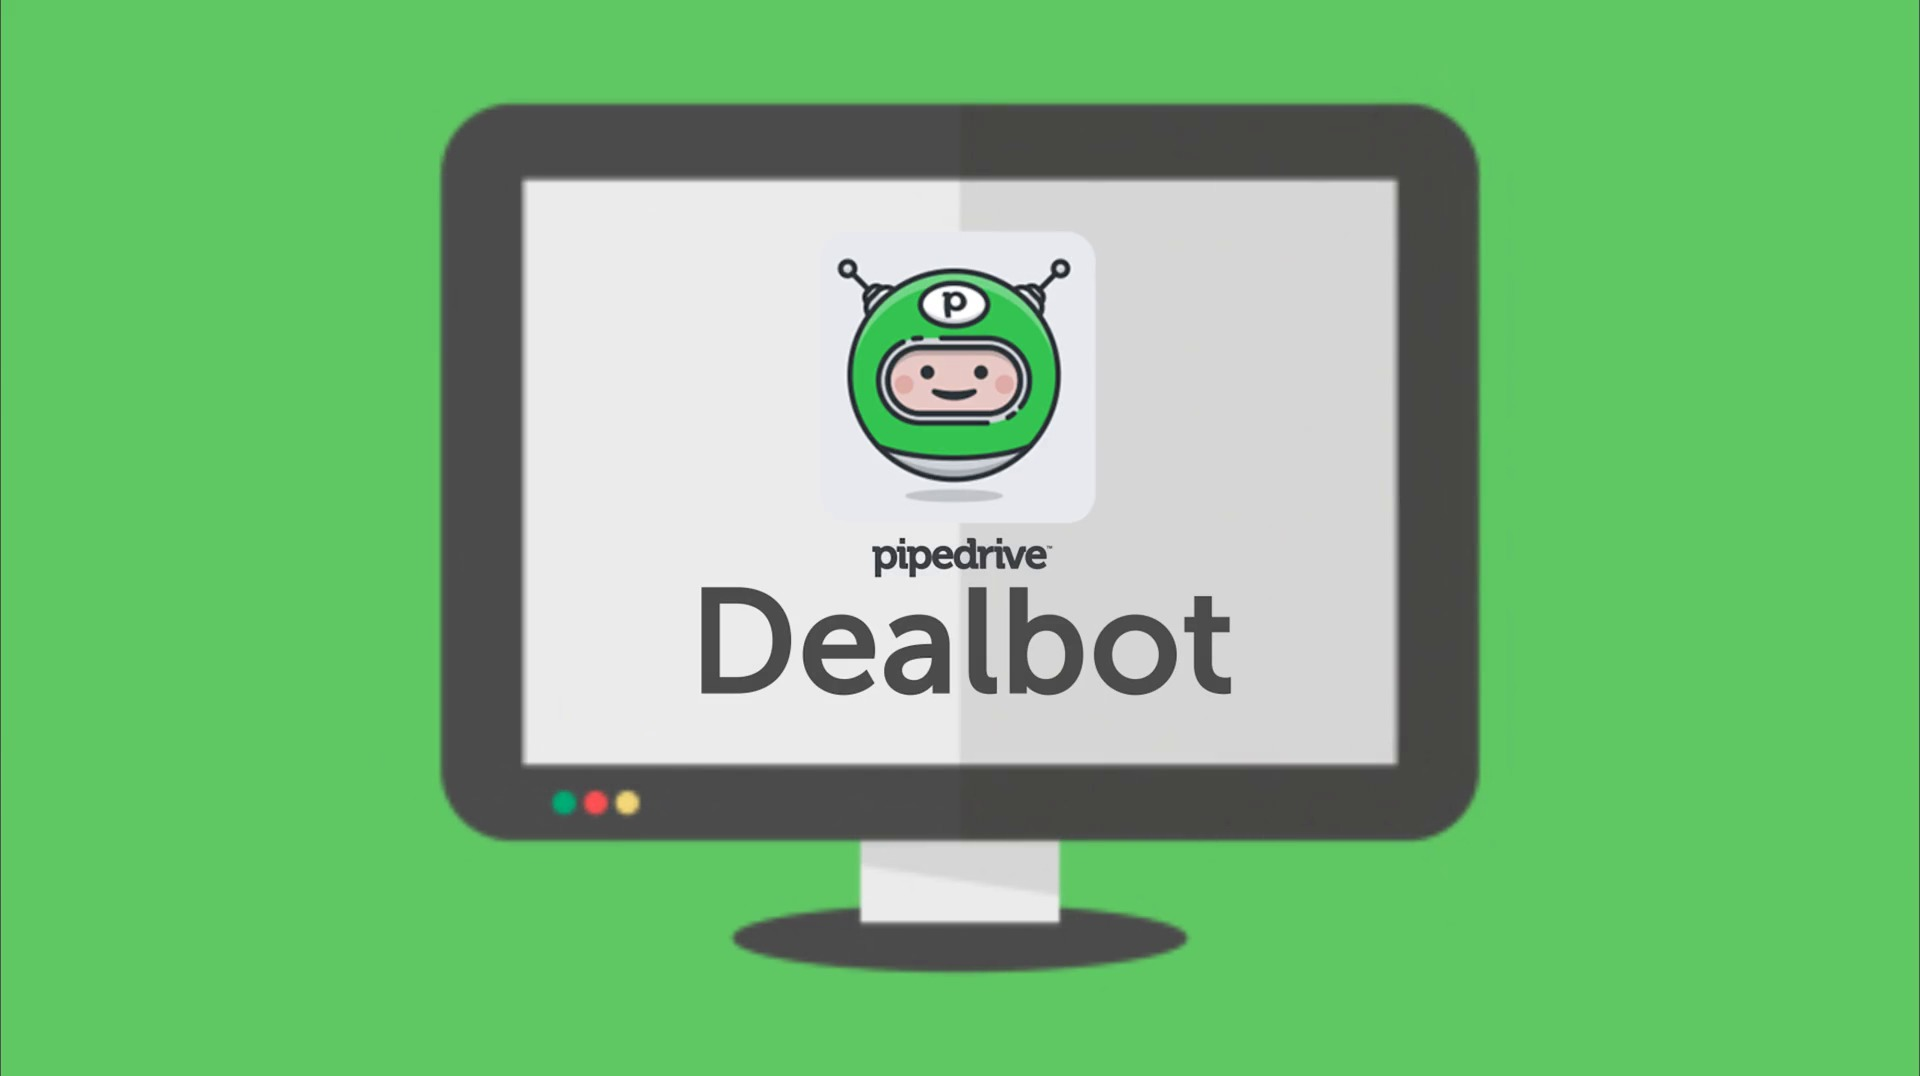 Dealbot - Pipedrive Slack integration